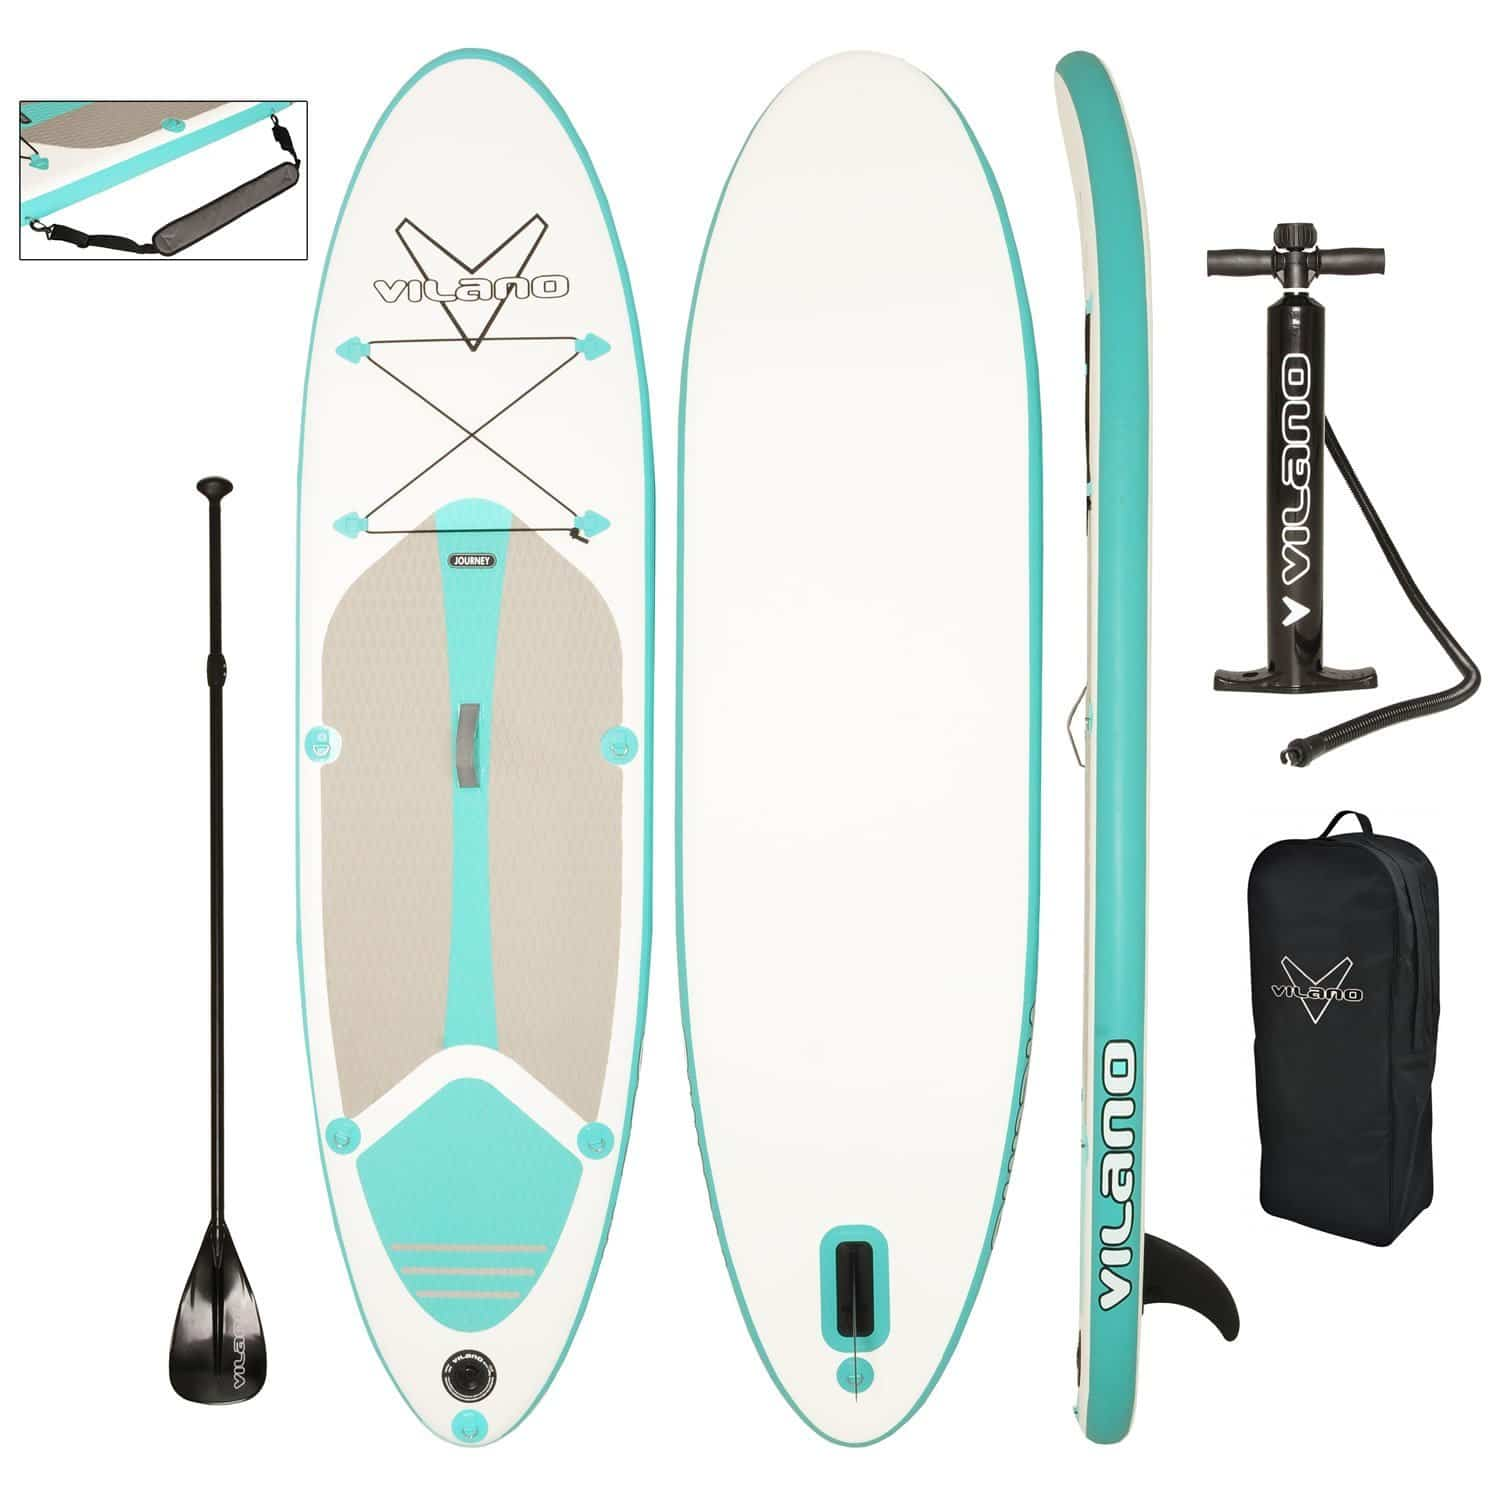 Vilano Journey Inflatable Paddle Board Review